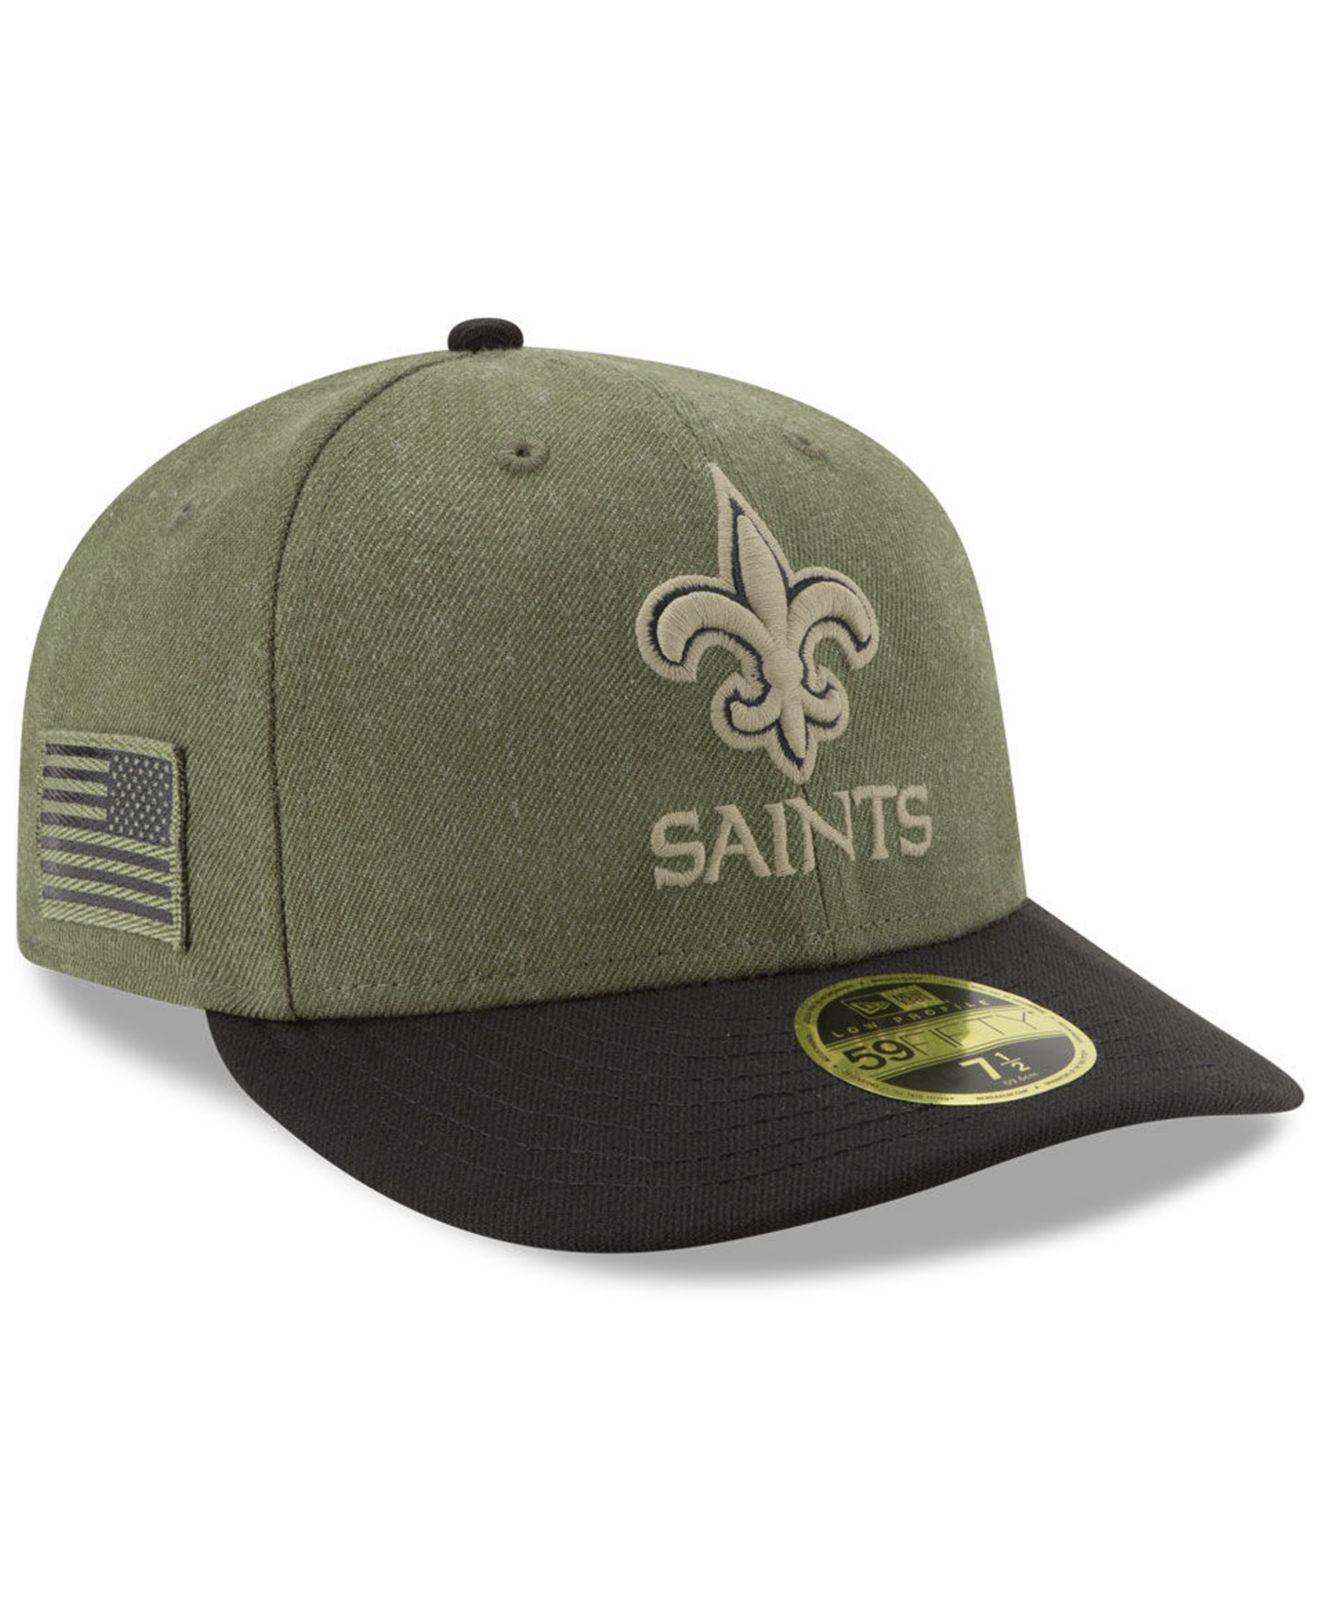 Lyst - KTZ New Orleans Saints Salute To Service Low Profile 59fifty ... 0dfddcb57